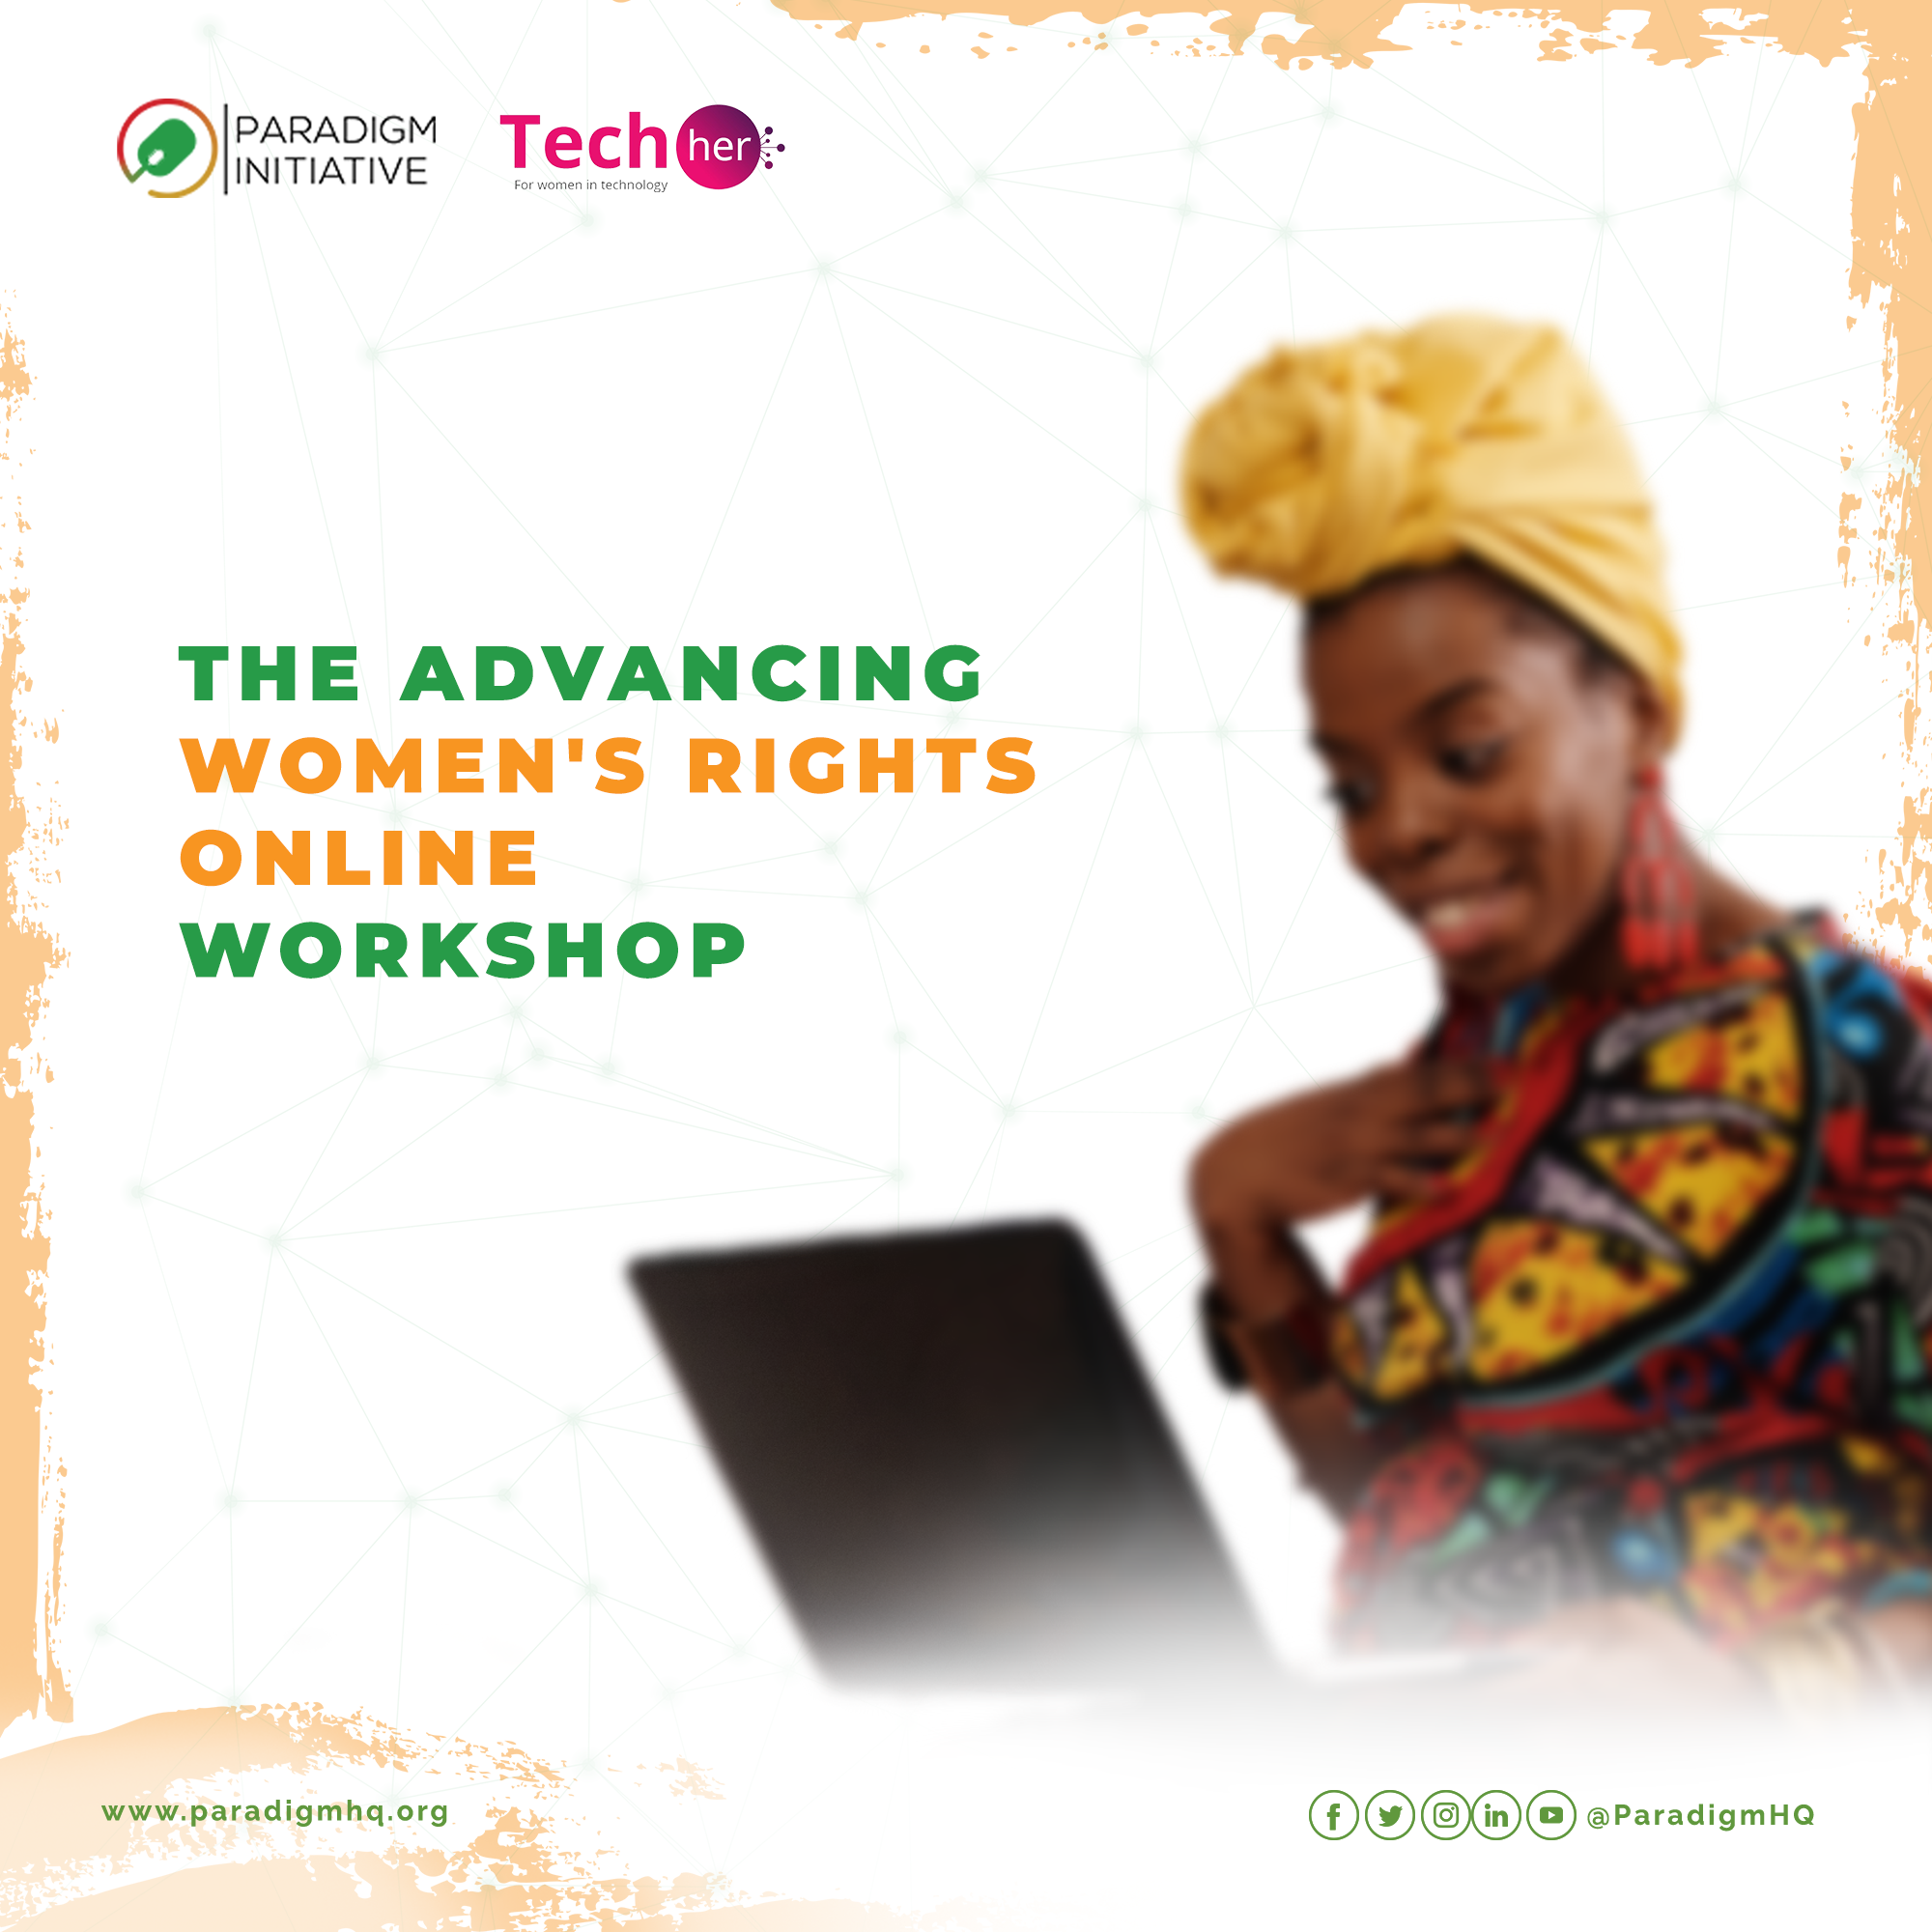 THE ADVANCING WOMEN'S RIGHTS ONLINE WORKSHOP